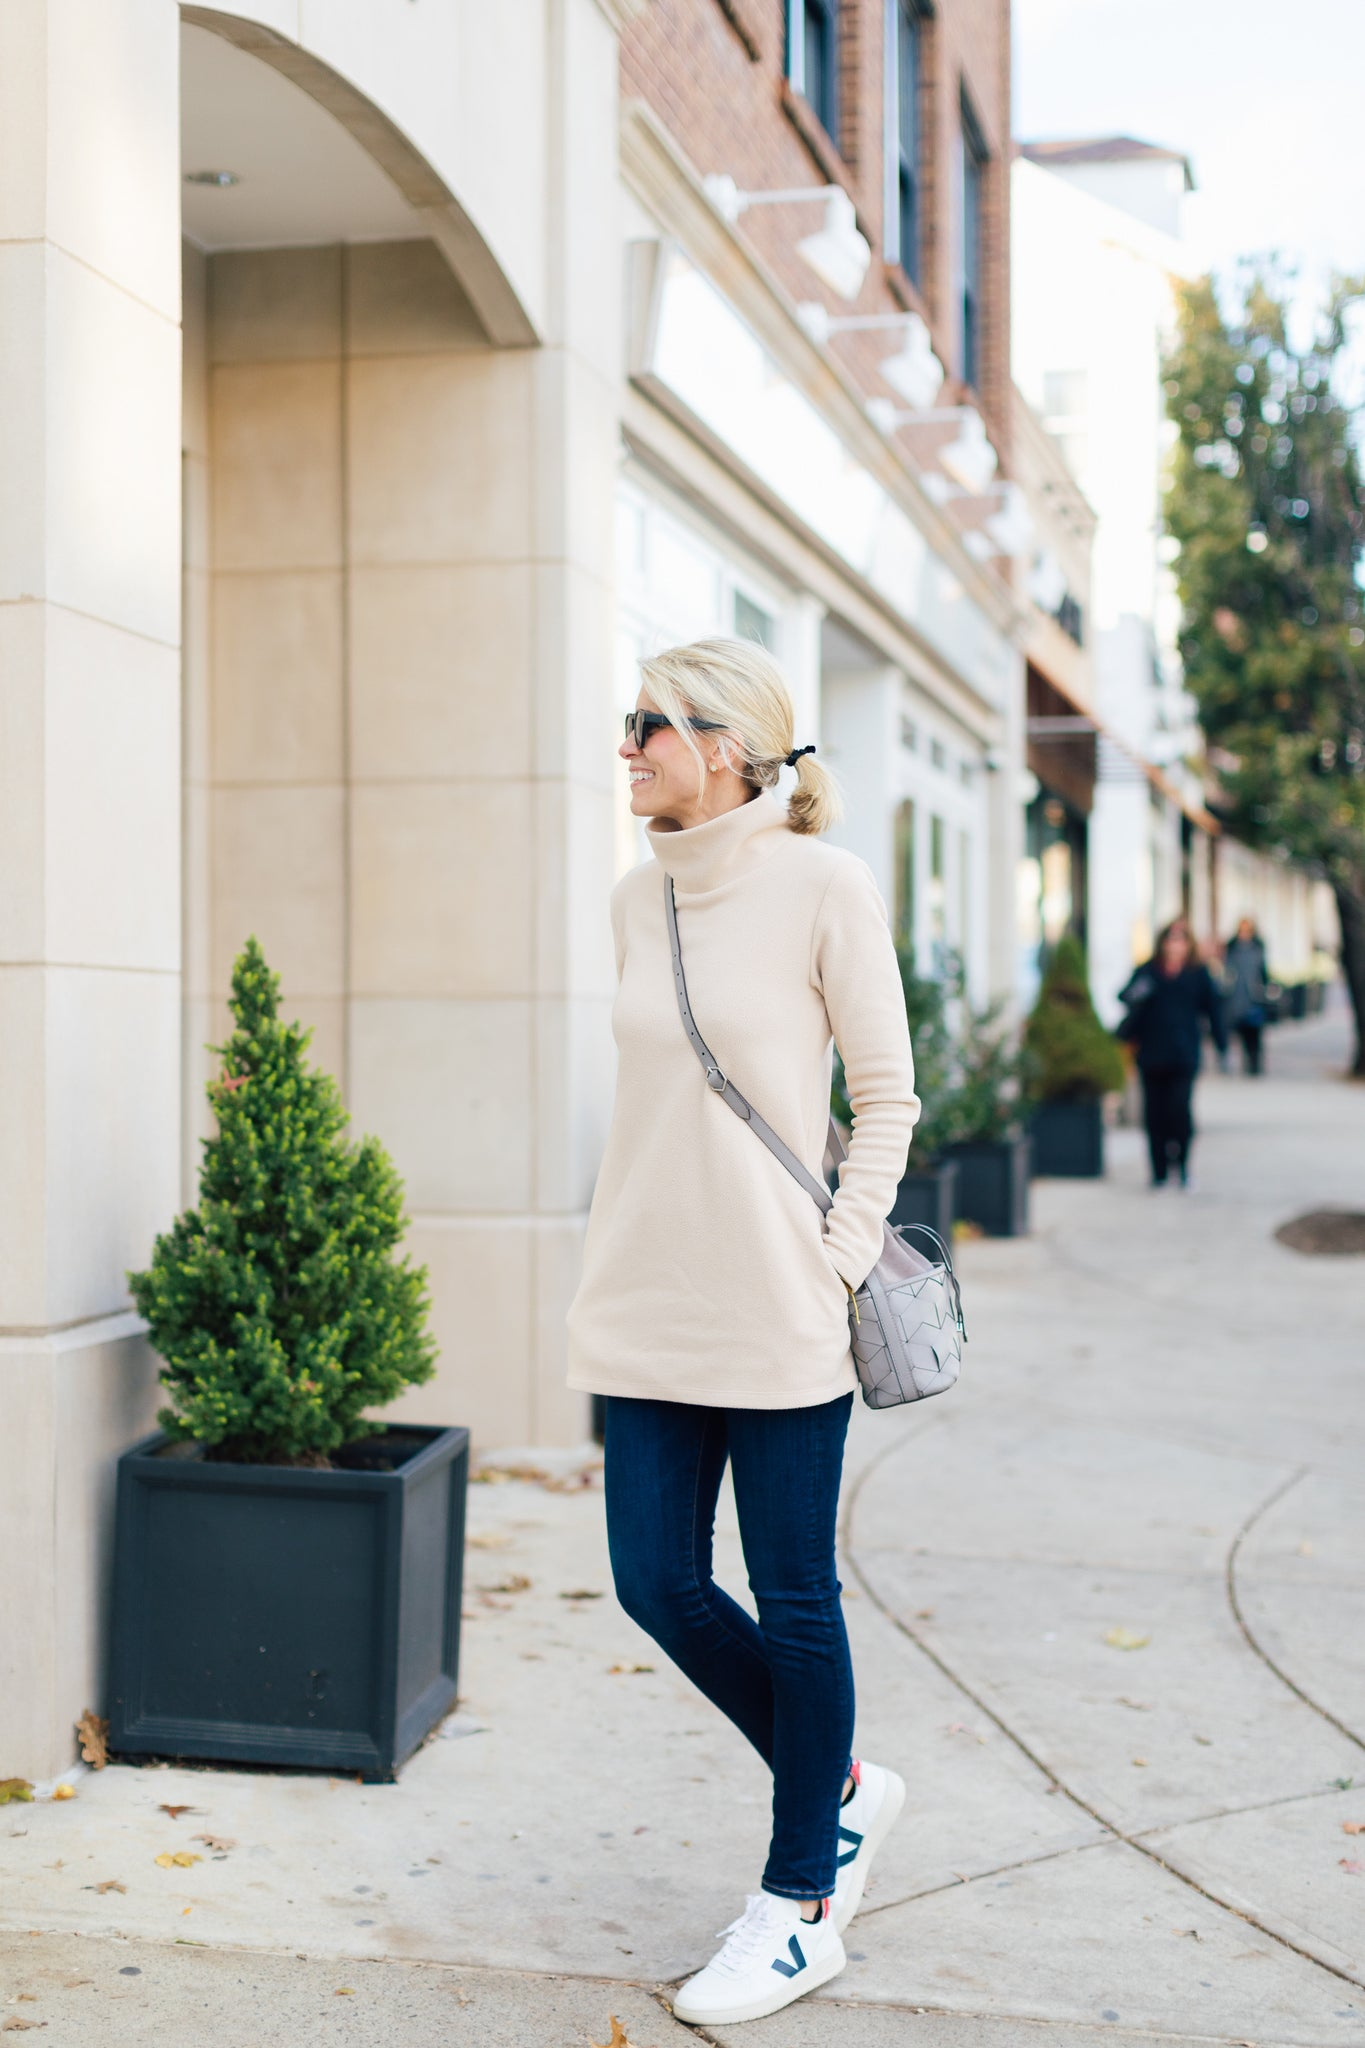 Dudley Stephens fleece cobble hill turtleneck natural blush